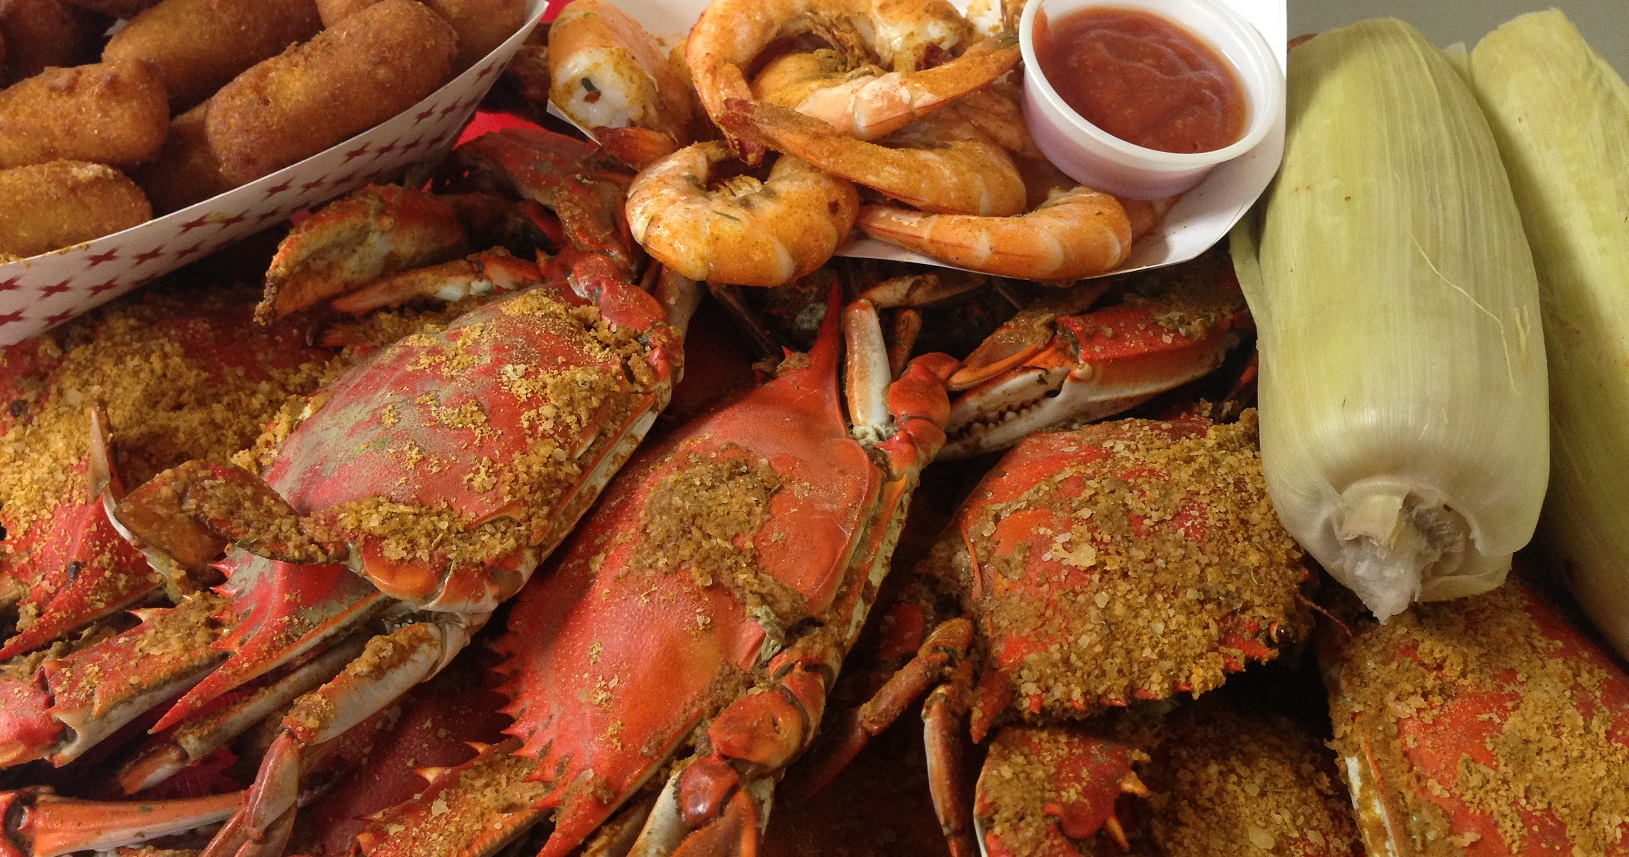 Outstanding Ocean City Md Crabs Crab Alley Md Crab Houses Seafood Download Free Architecture Designs Scobabritishbridgeorg